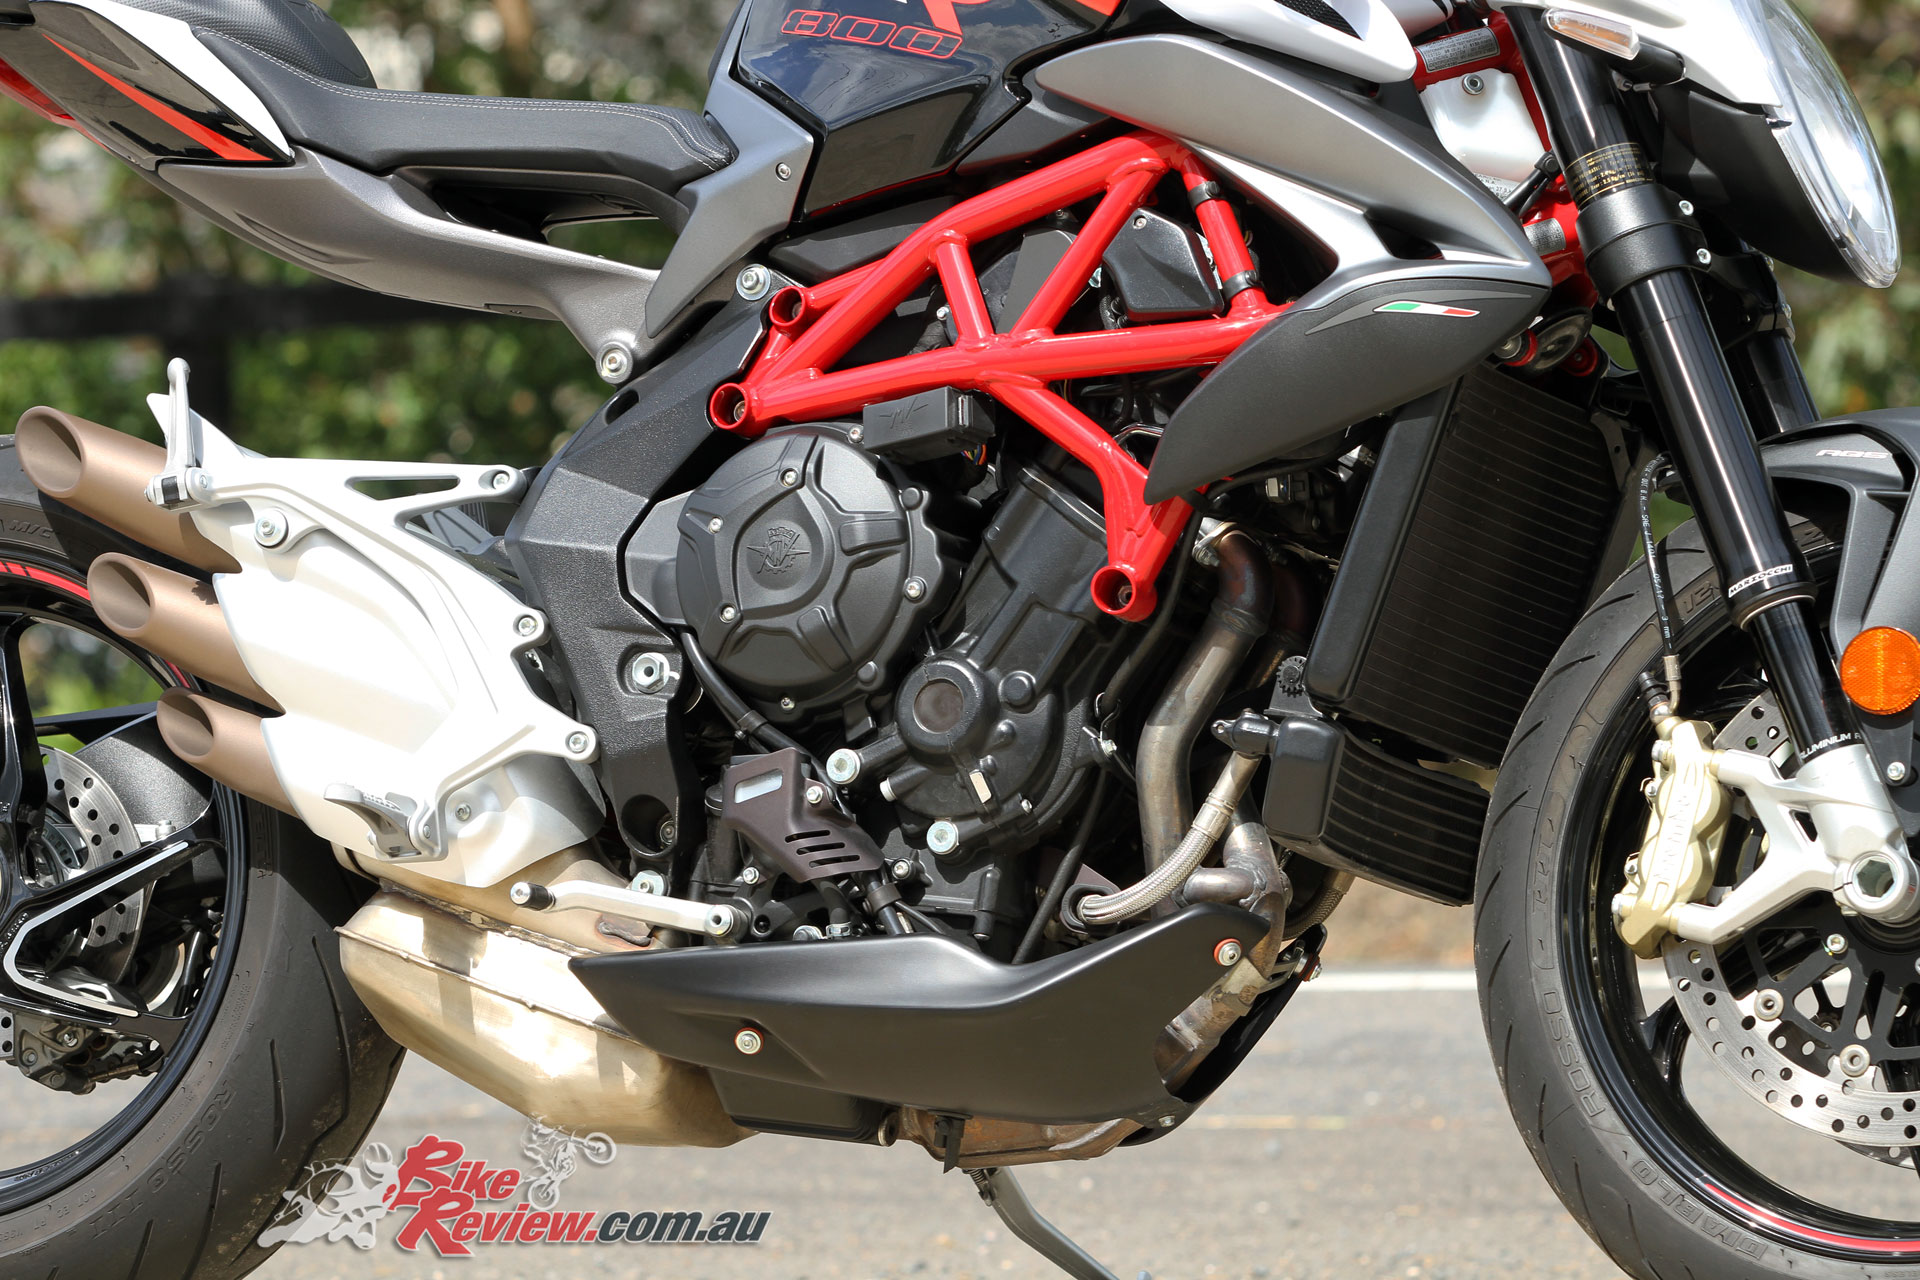 An extensive electronics system offers ABS, traction control and rider modes, with the dual injector per cylinder making a notable difference to throttle response and smoothness